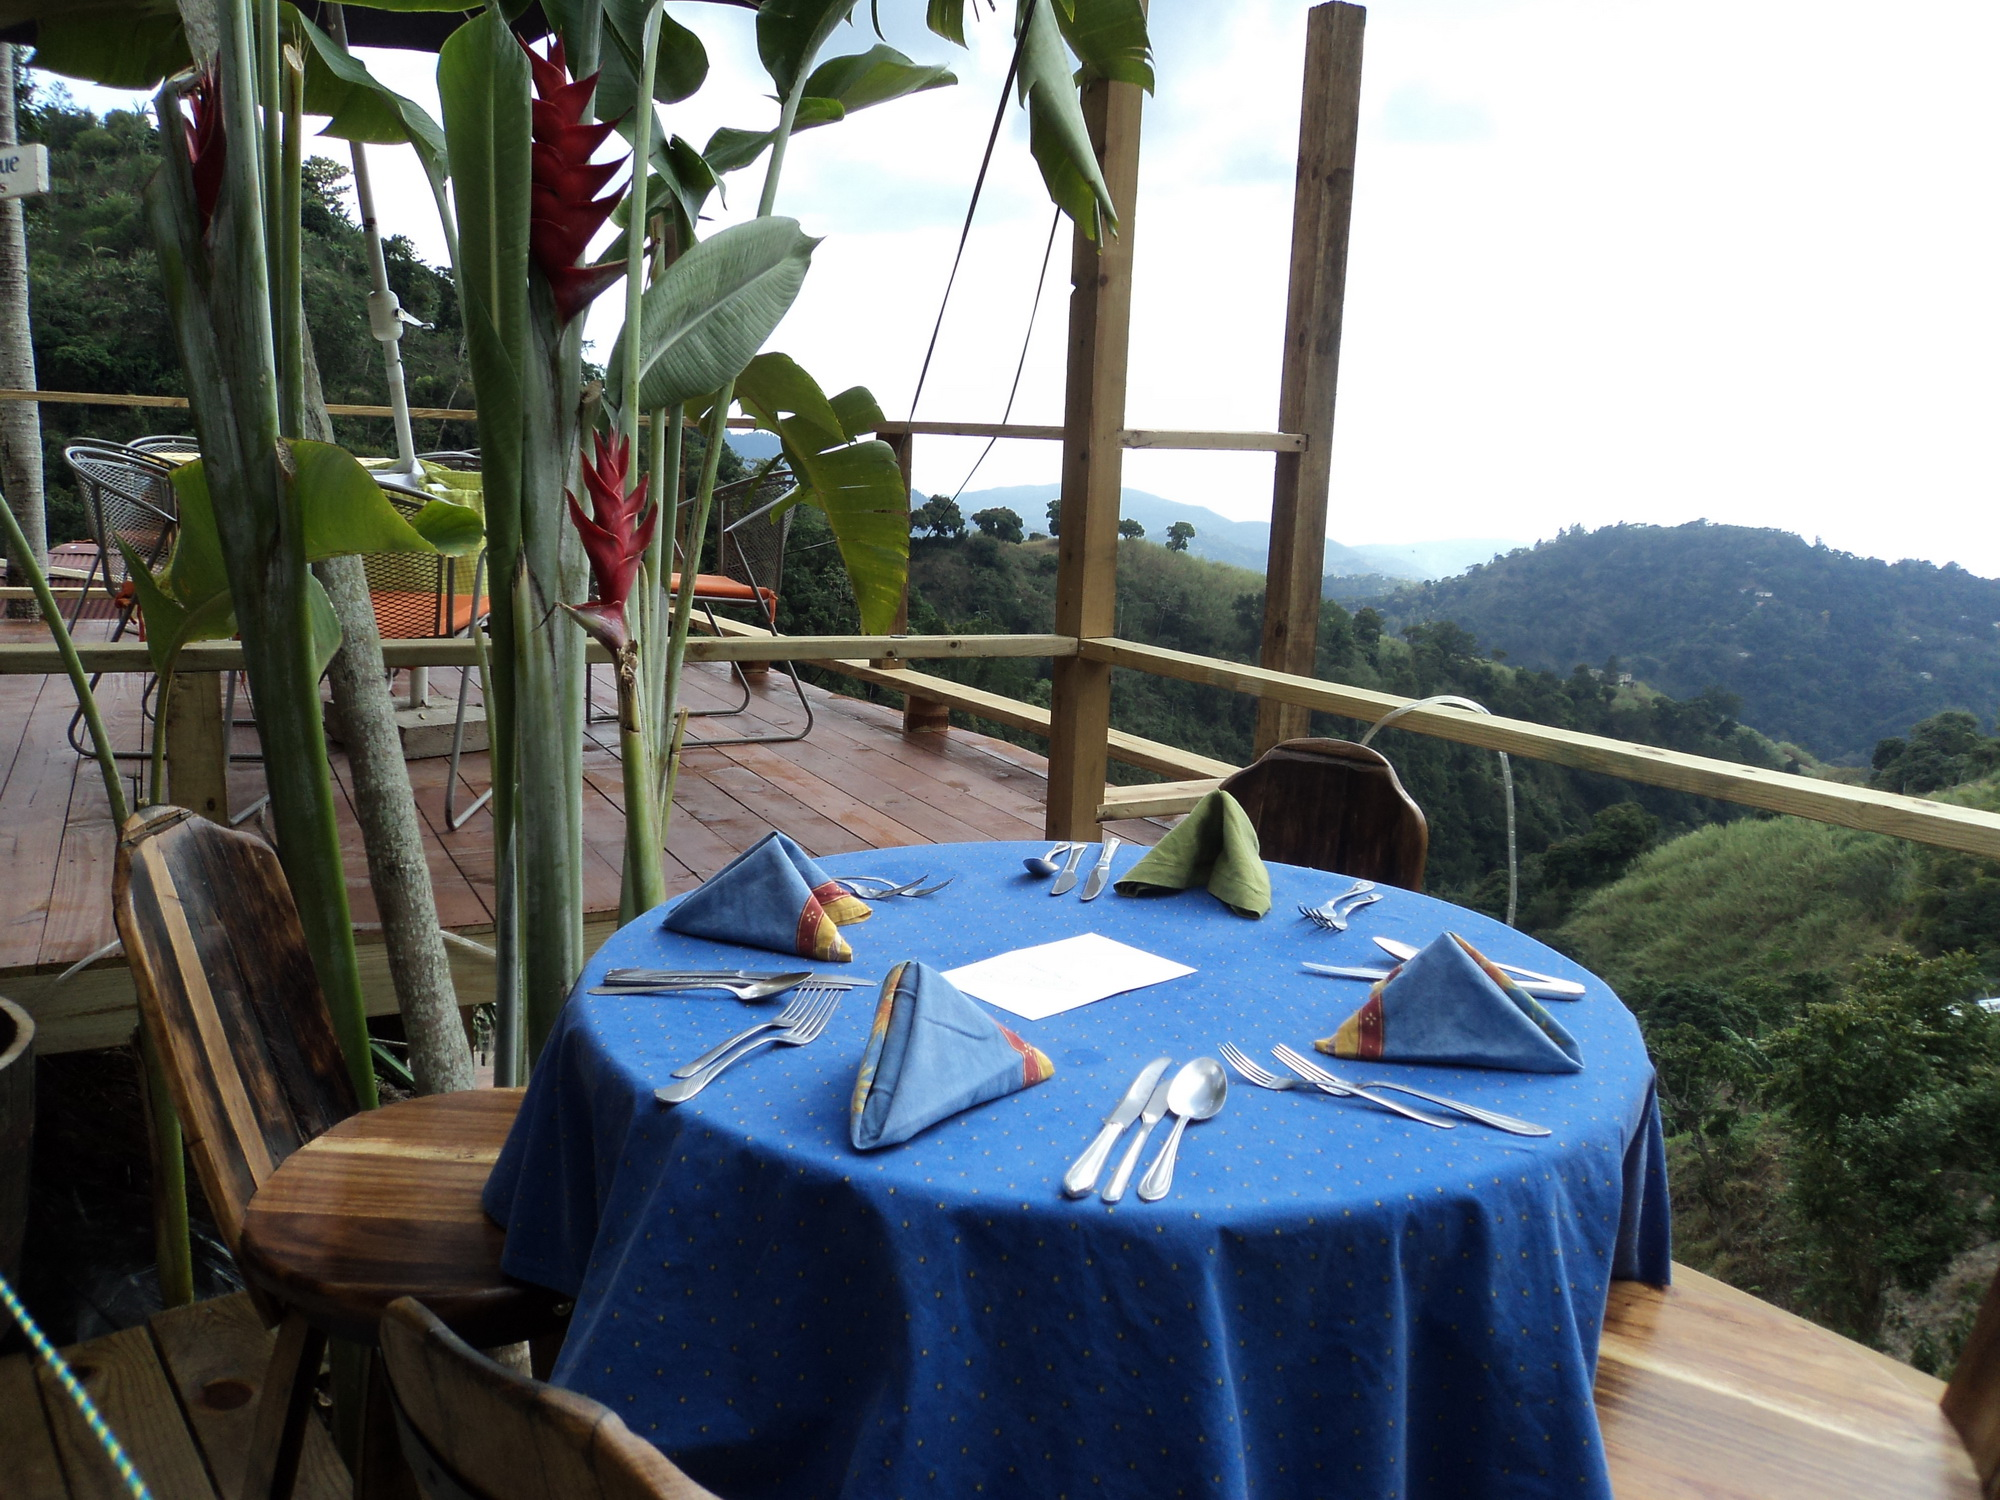 Dining on the Edge at EITS Cafe